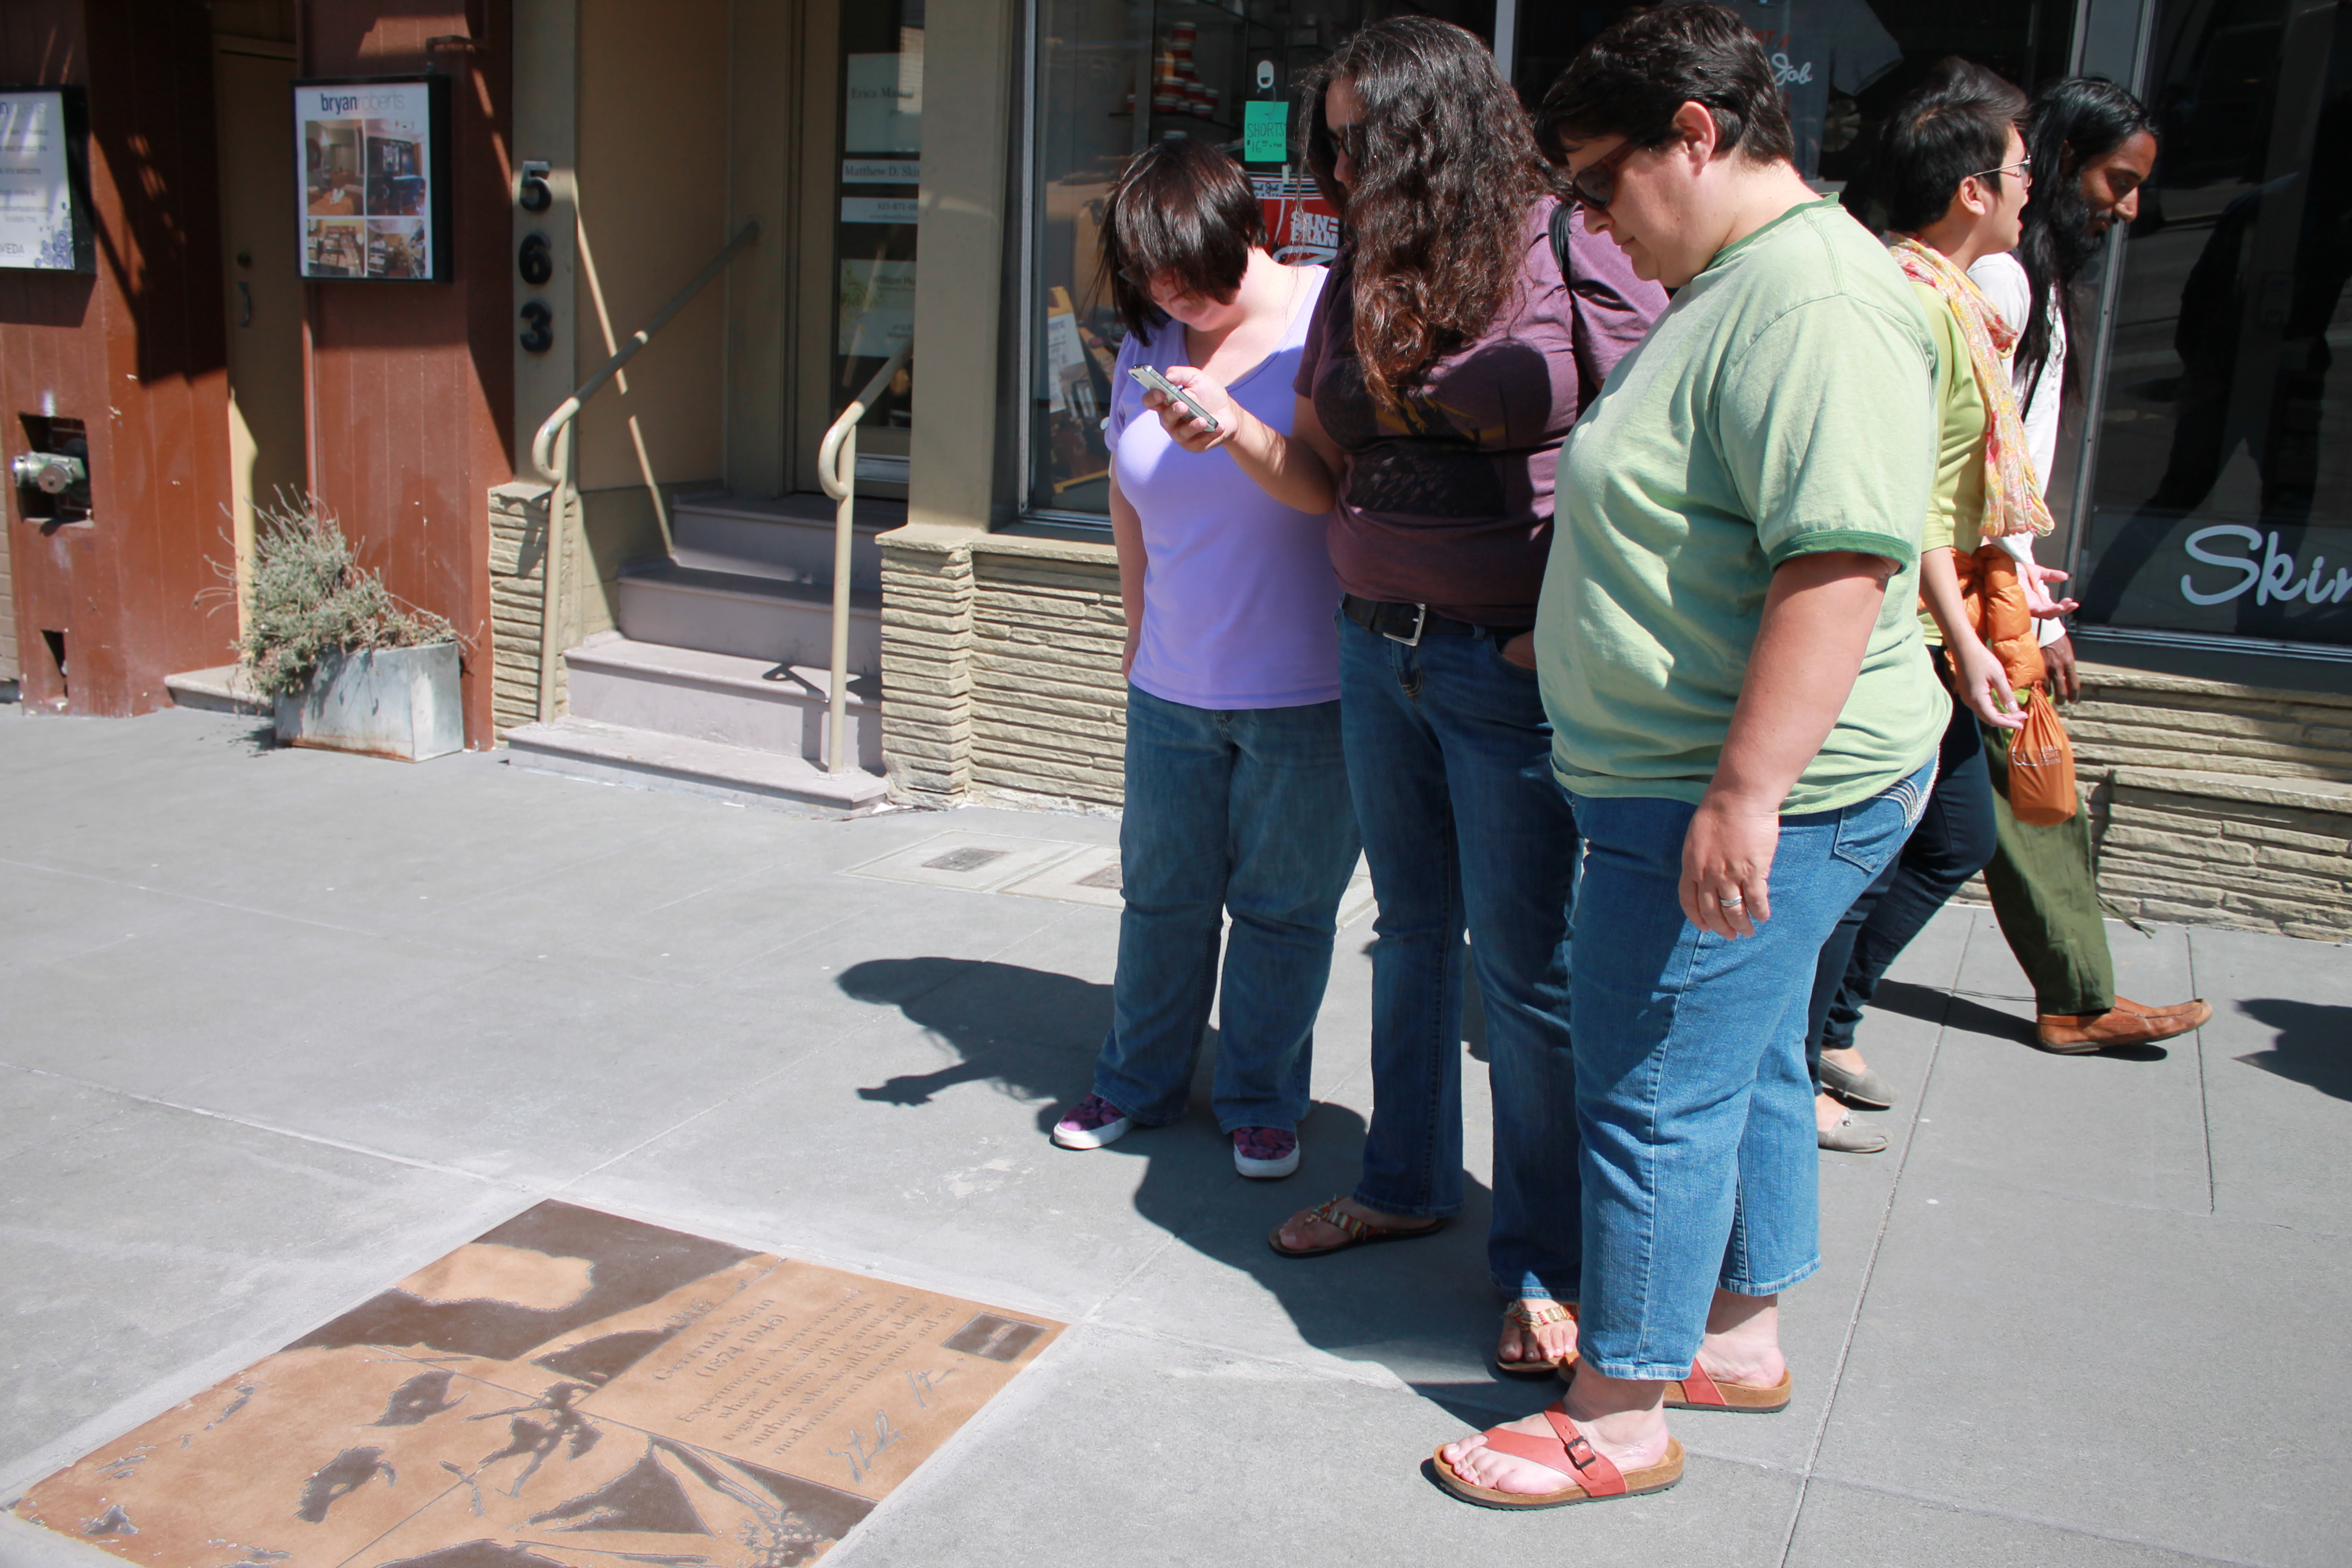 Former San Francisco Assistant District Attorney Rebecca Prozan, foreground, her wife, attorney Julia Adams, background, and their friend, center, pause to read the plaque honoring American lesbian writer Gertrude Stein outside of Hand Job Nails and Spa on Castro Street near 19th Street. (Photo: Heather Cassell)